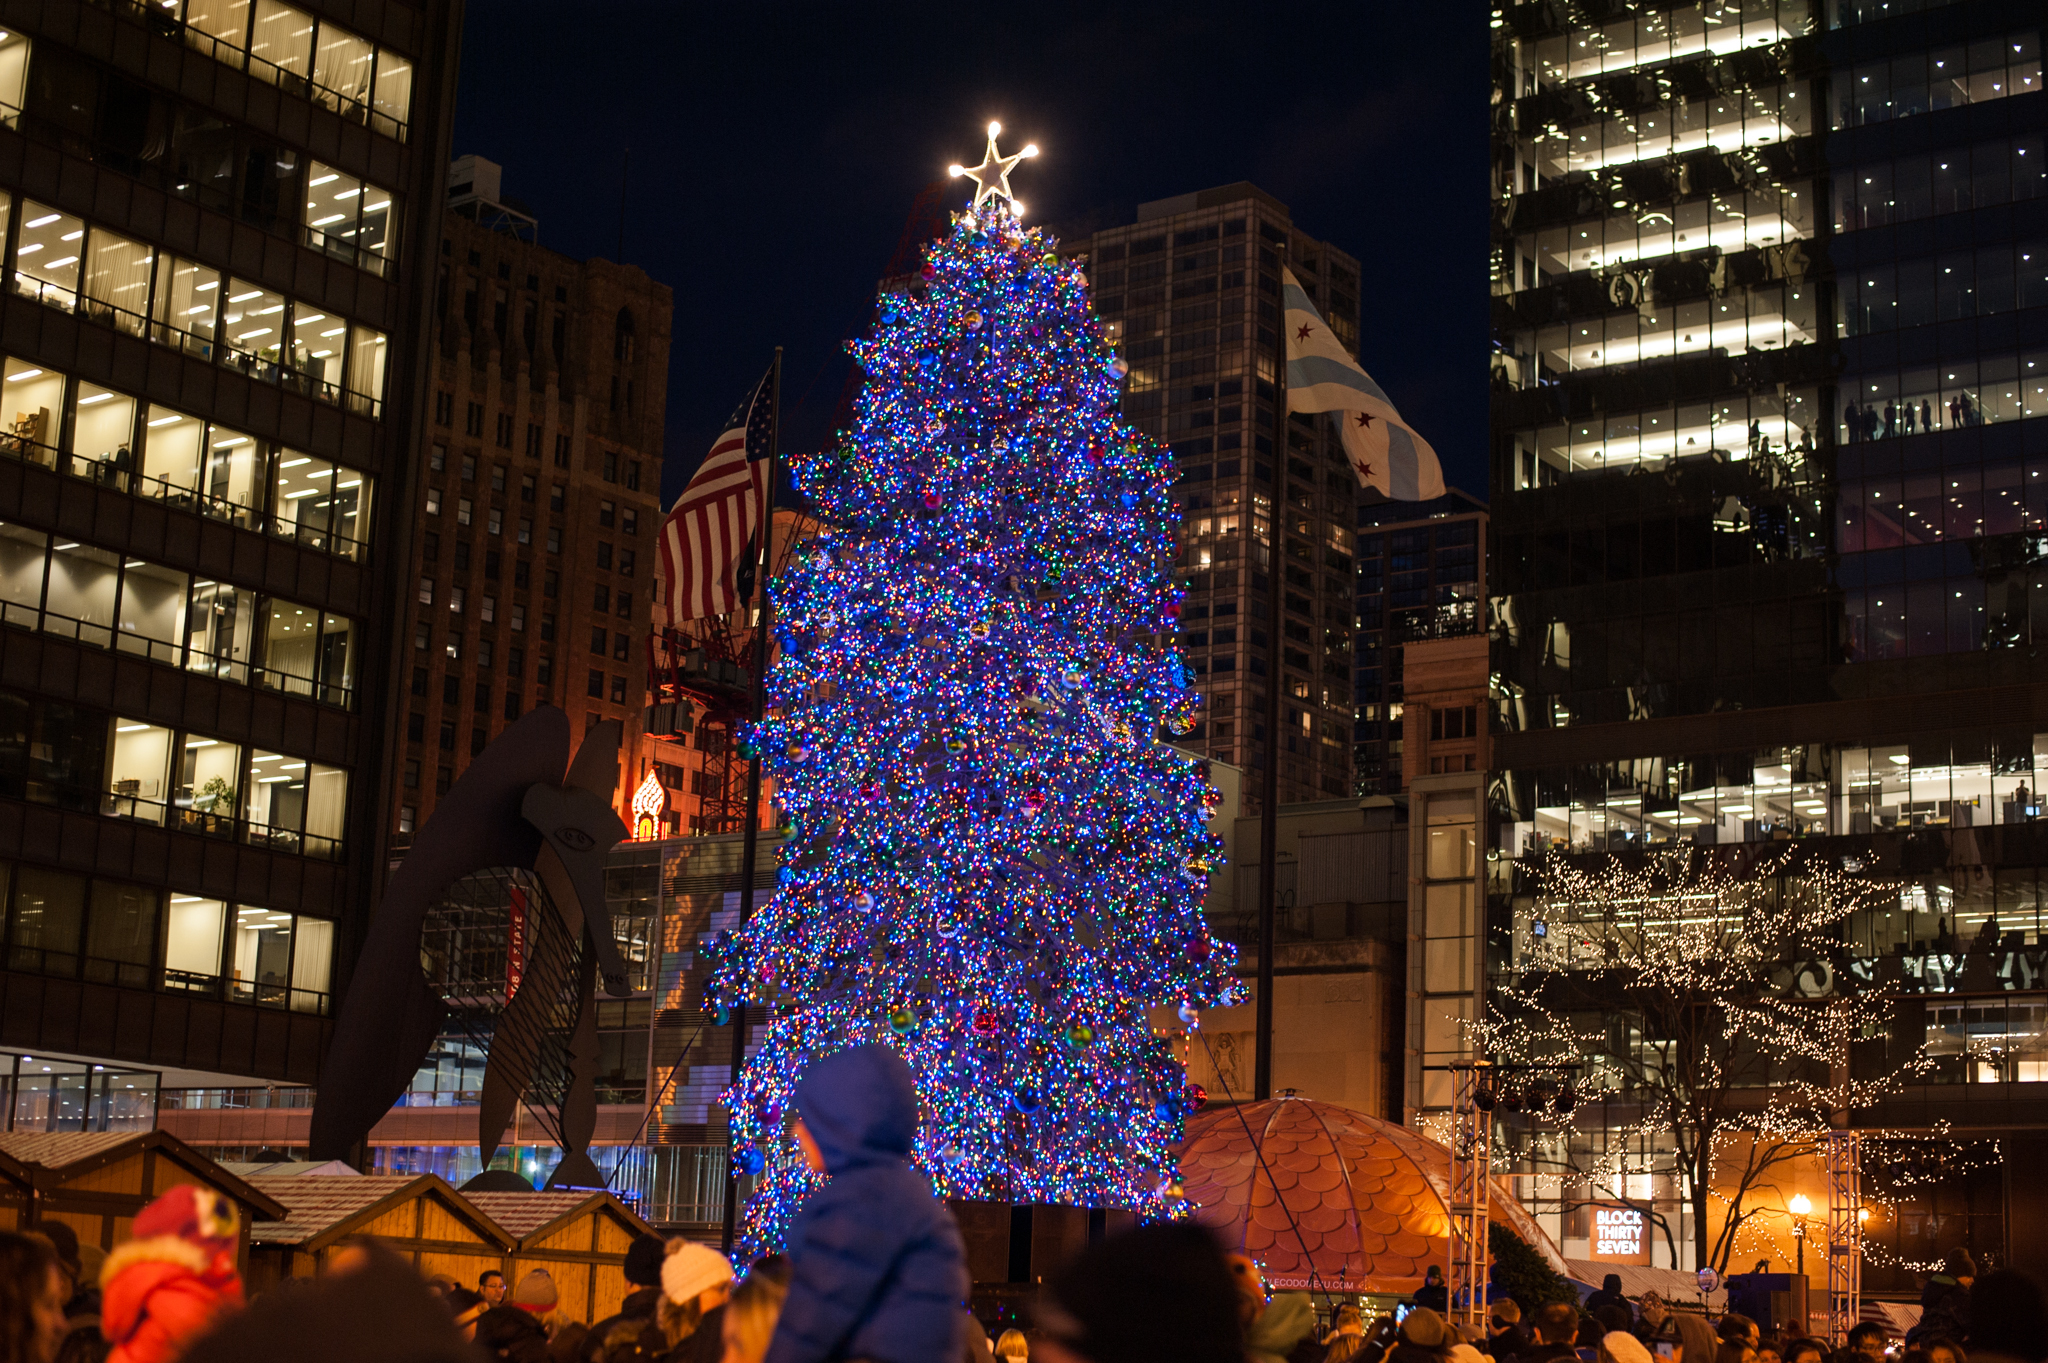 Photos: Daley Plaza tree lighting